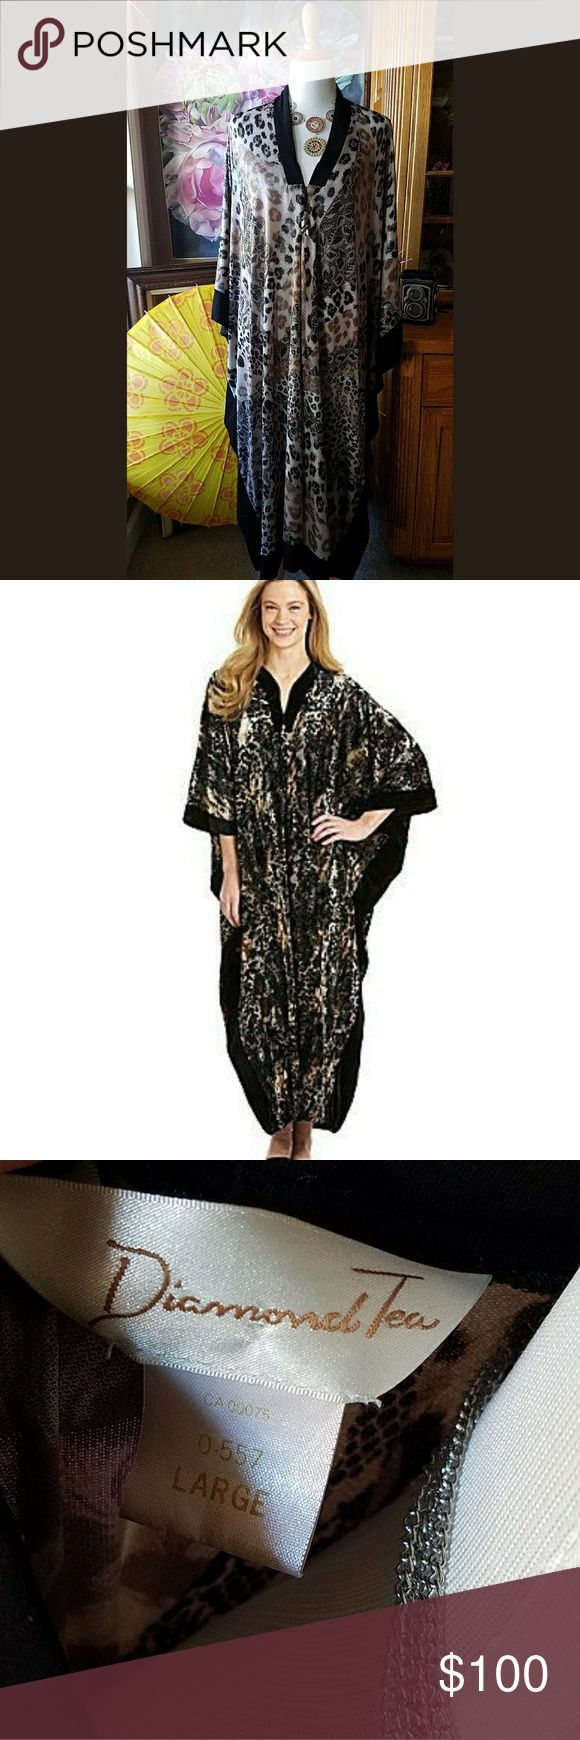 Diamond Tea Leopard Caftan! Pure Luxury! Diamond Tea known for luxurious sleep and lounge wear. This leopard beauty is a v neck zip up with lace print and black paneling. This is definitely one for the glamorous! Diamond Tea Intimates & Sleepwear